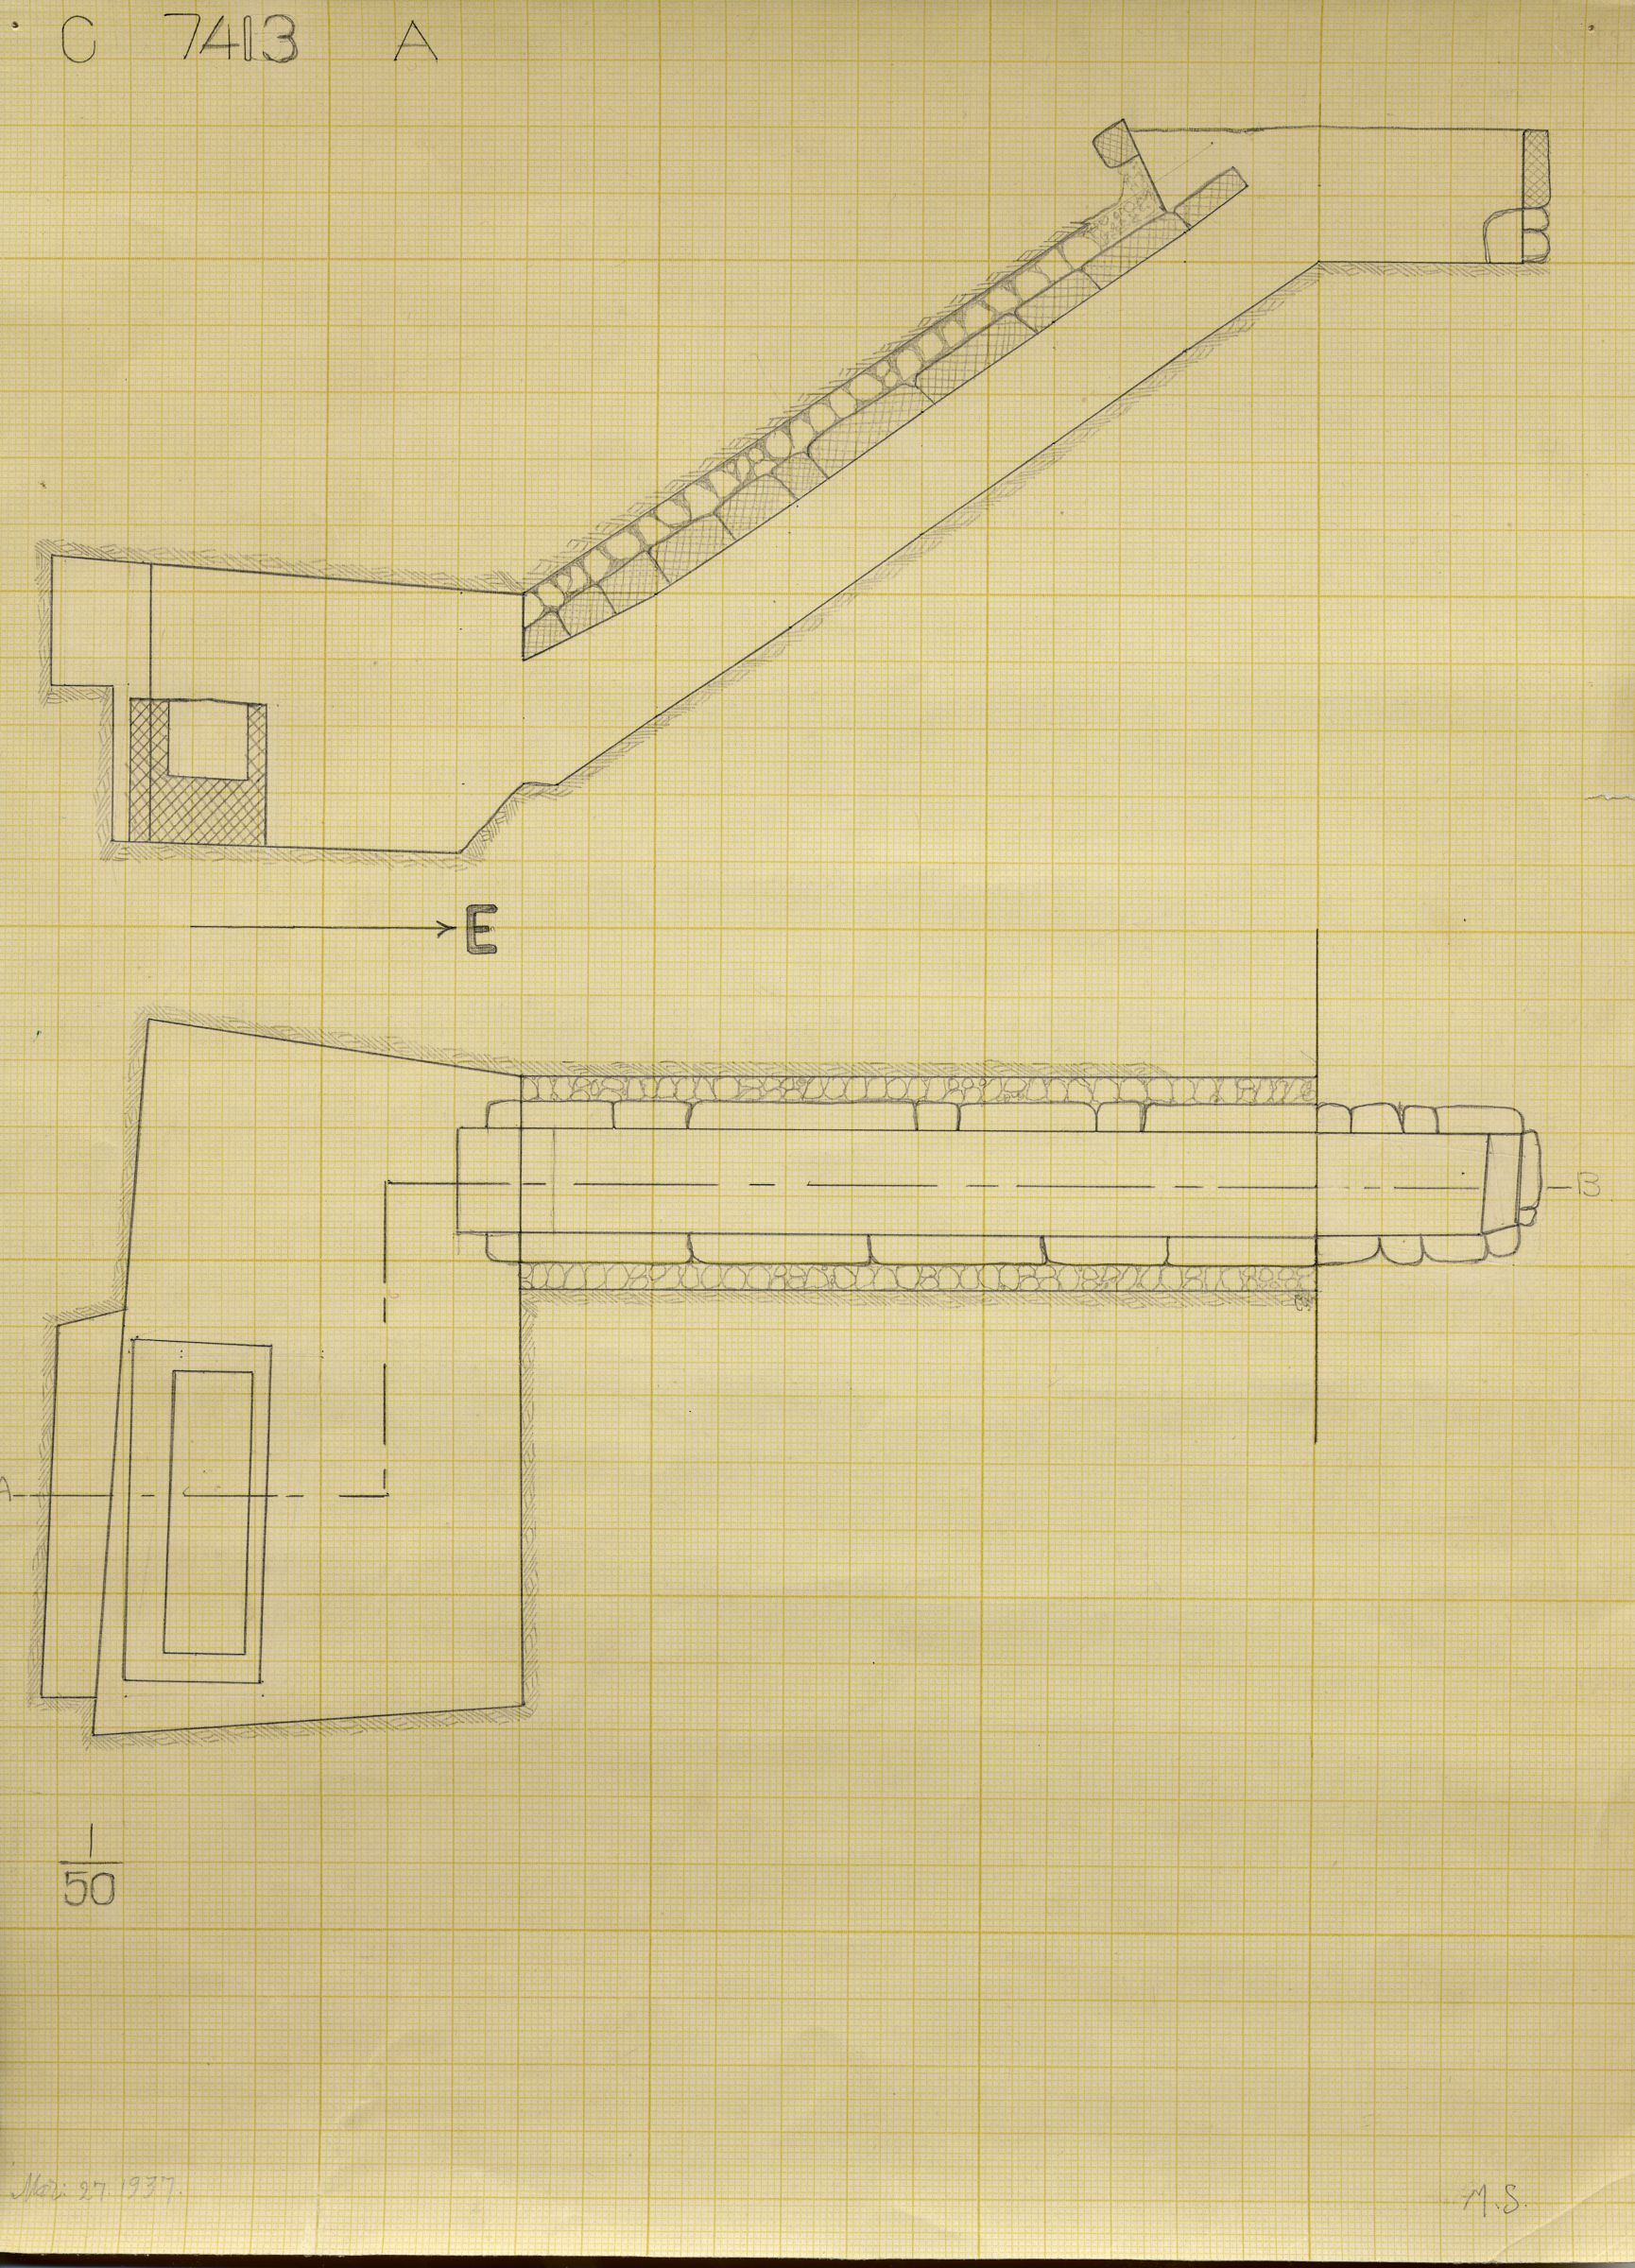 Maps and plans: G 7413, Shaft A